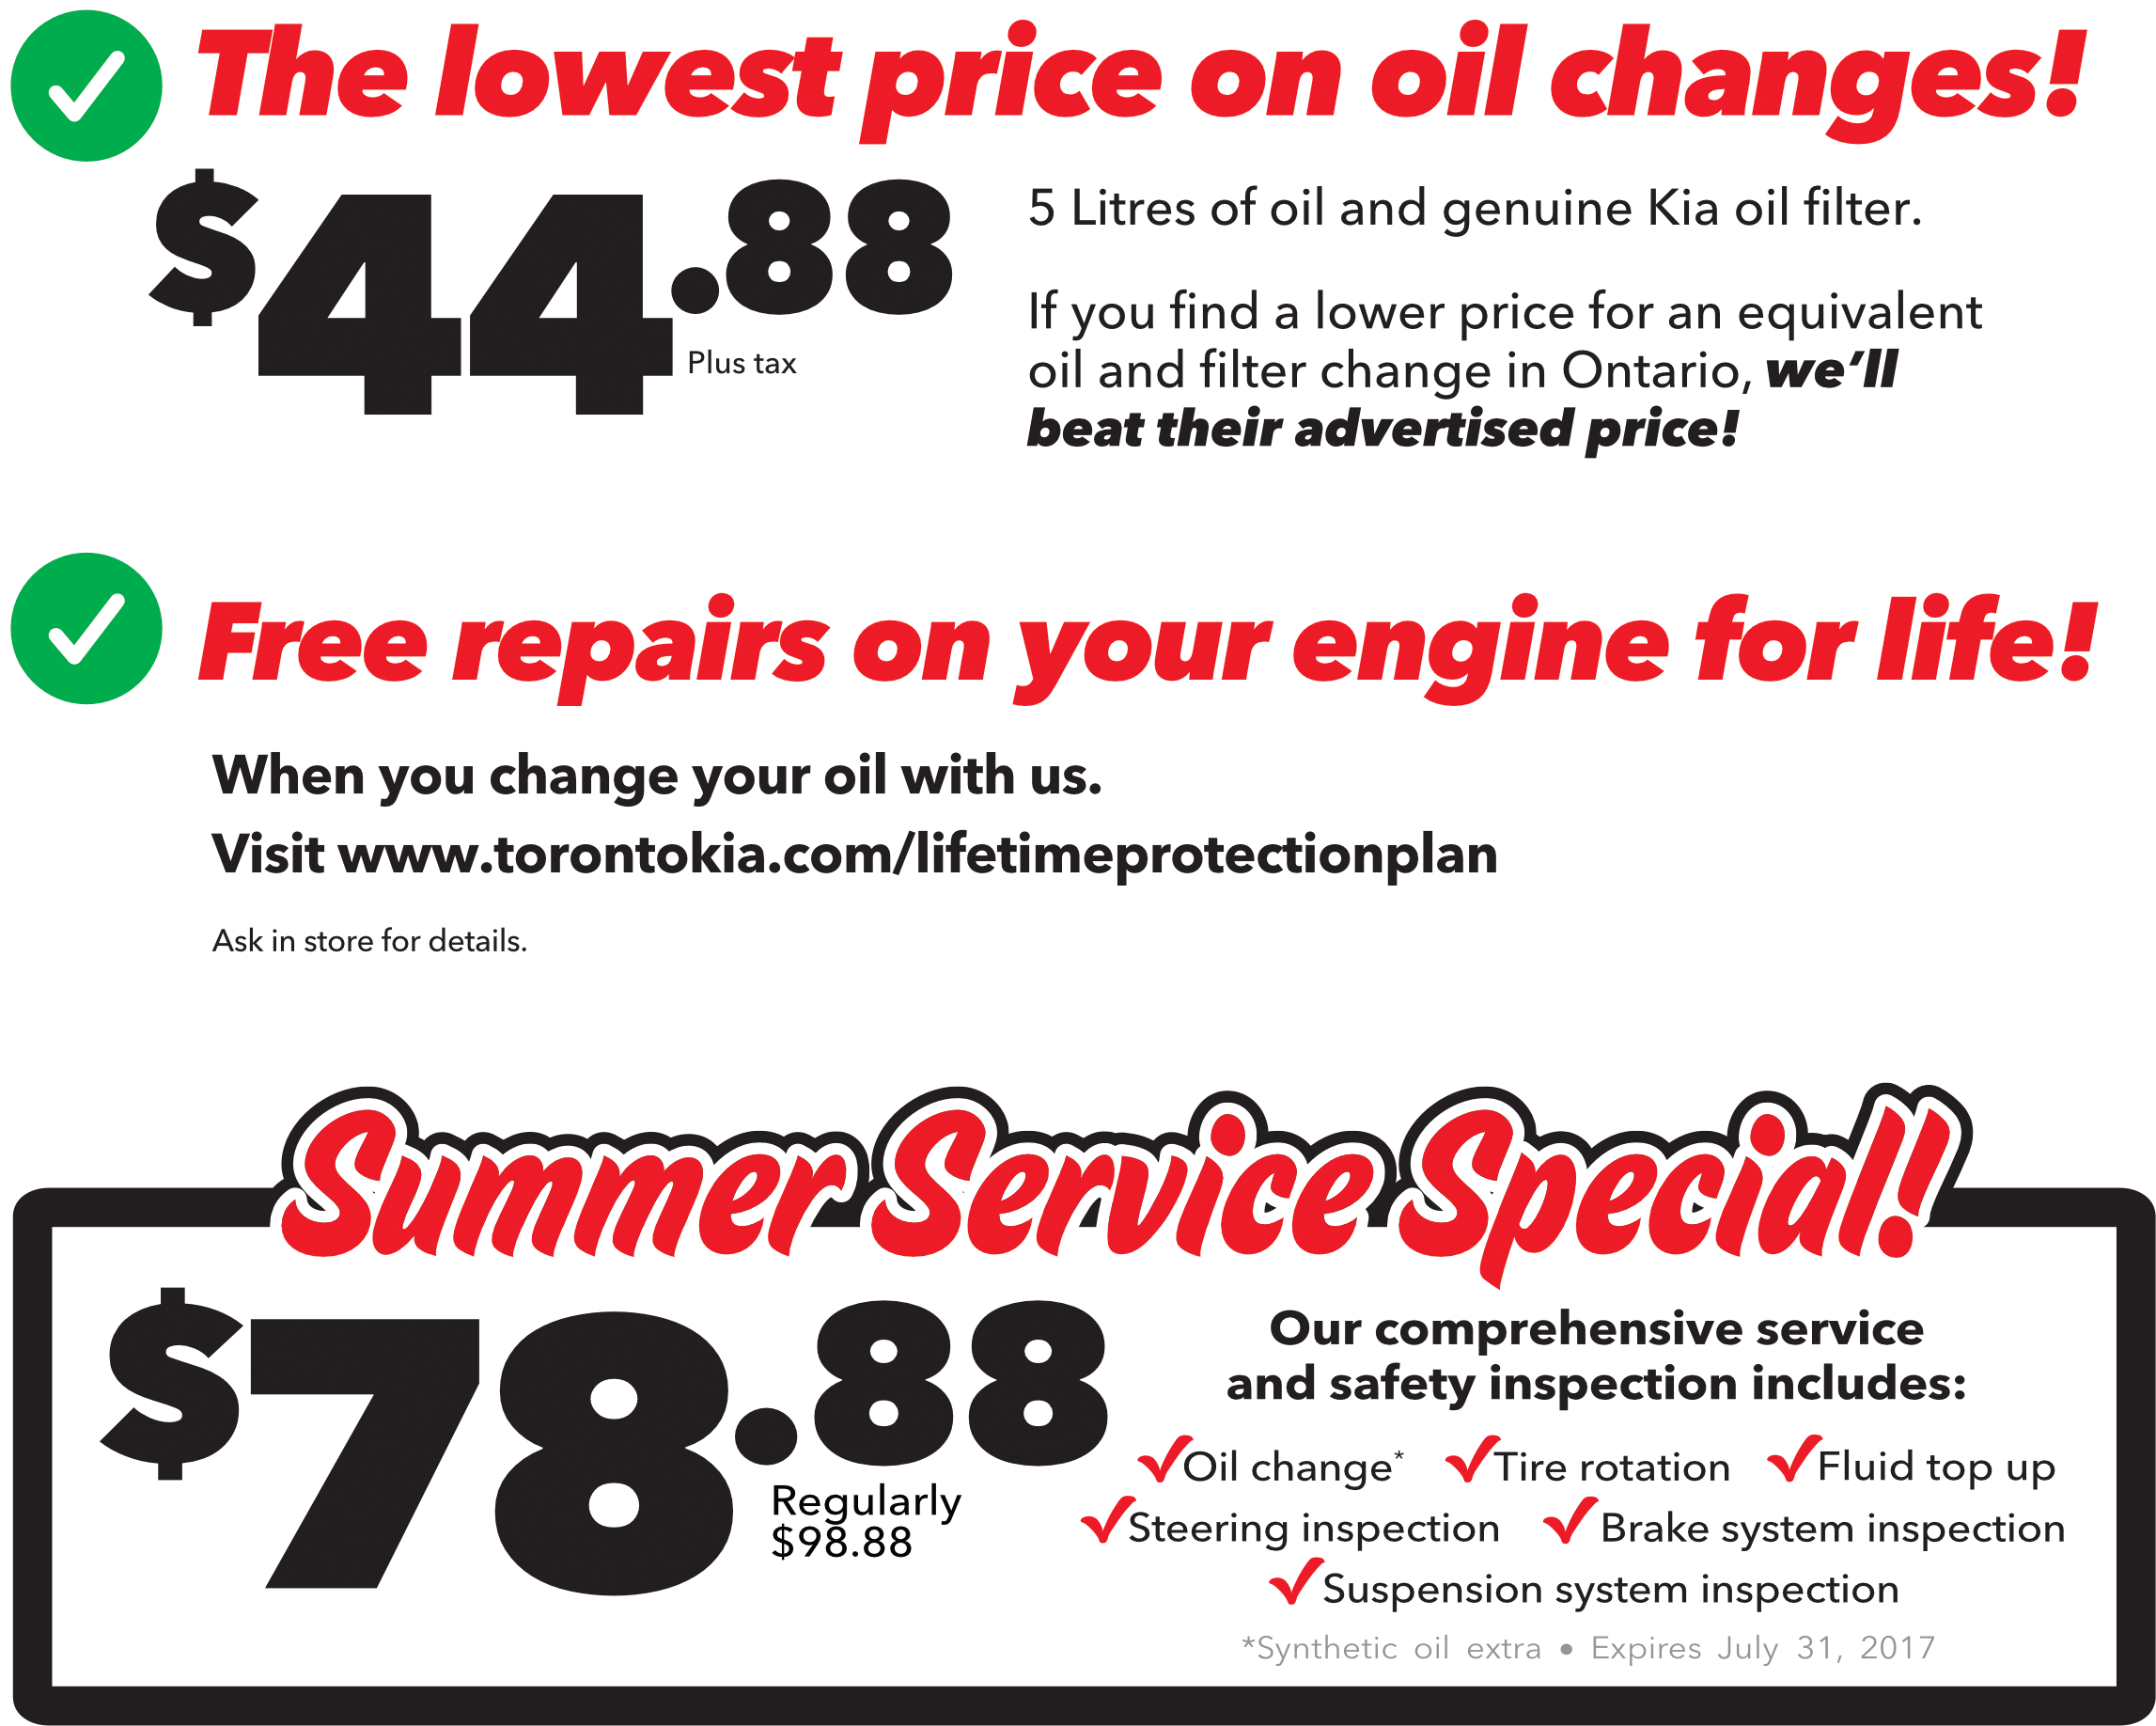 Guaranteed lowest price on oil changes